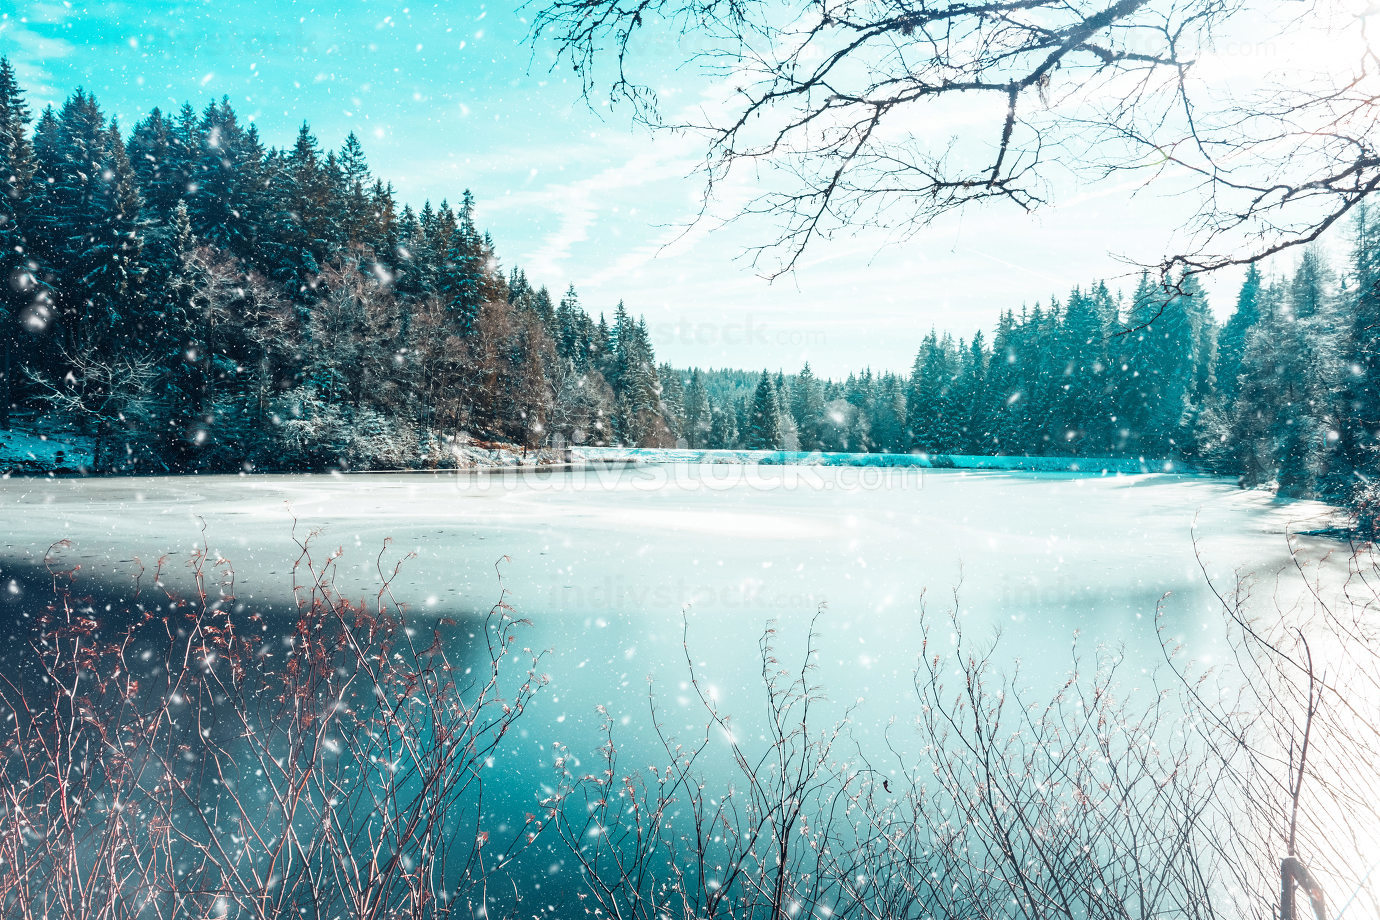 an idyllic forest lake in winter